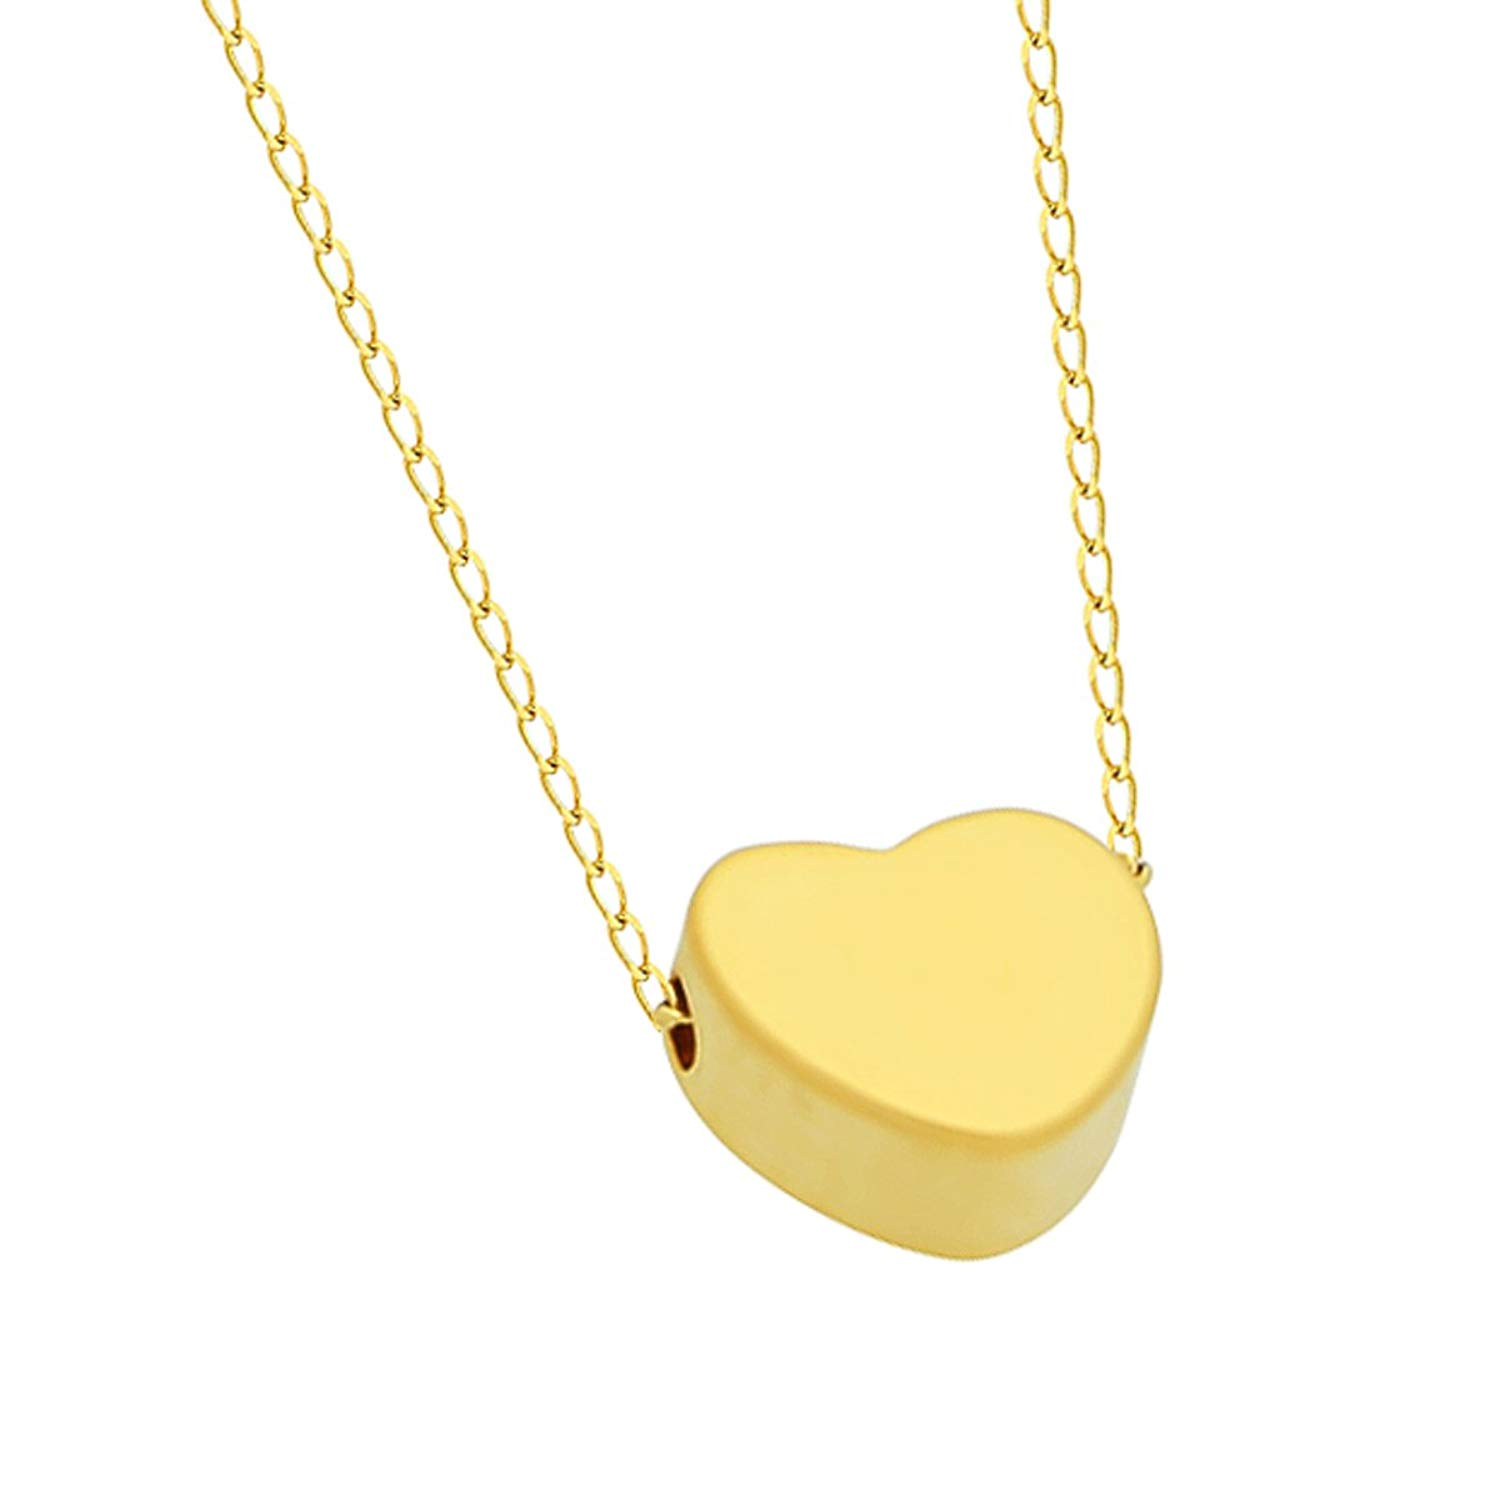 3e1fbc5ea Get Quotations · 925 Sterling Silver Tiny 14K Gold Plated Heart Necklace  Floating Gold Heart Necklace Simple Heart Charm